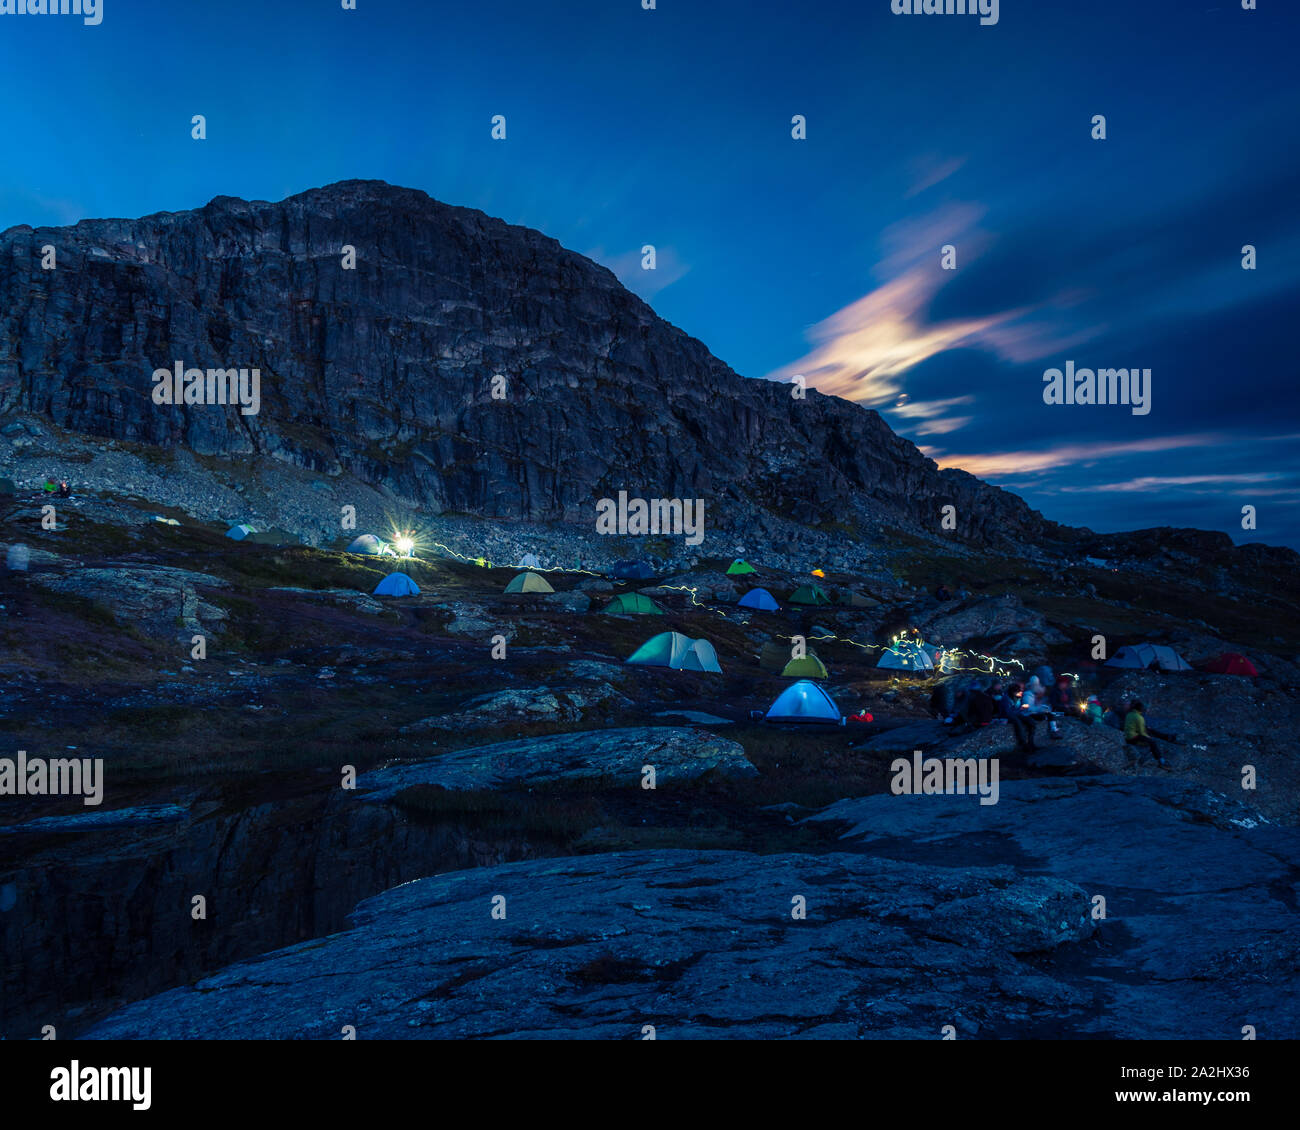 0209-17-trolltunga-norway-tourists-have-put-up-tents-to-spend-the-night-close-to-the-cliff-of-trolltunga-2A2HX36.jpg